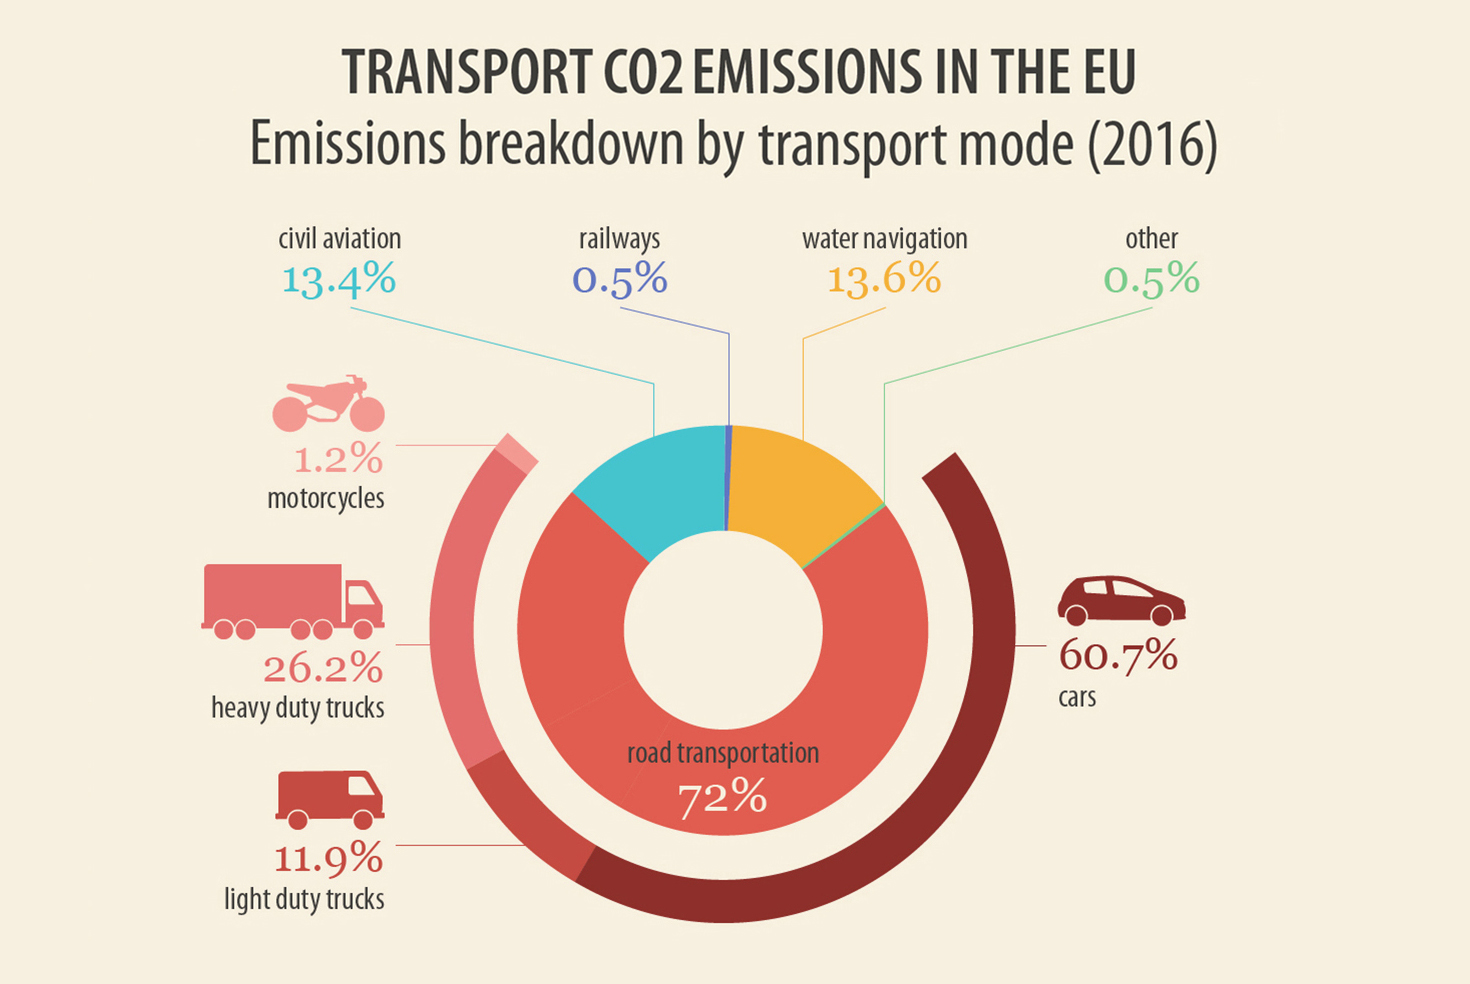 Transport CO2 Emissions in the EU